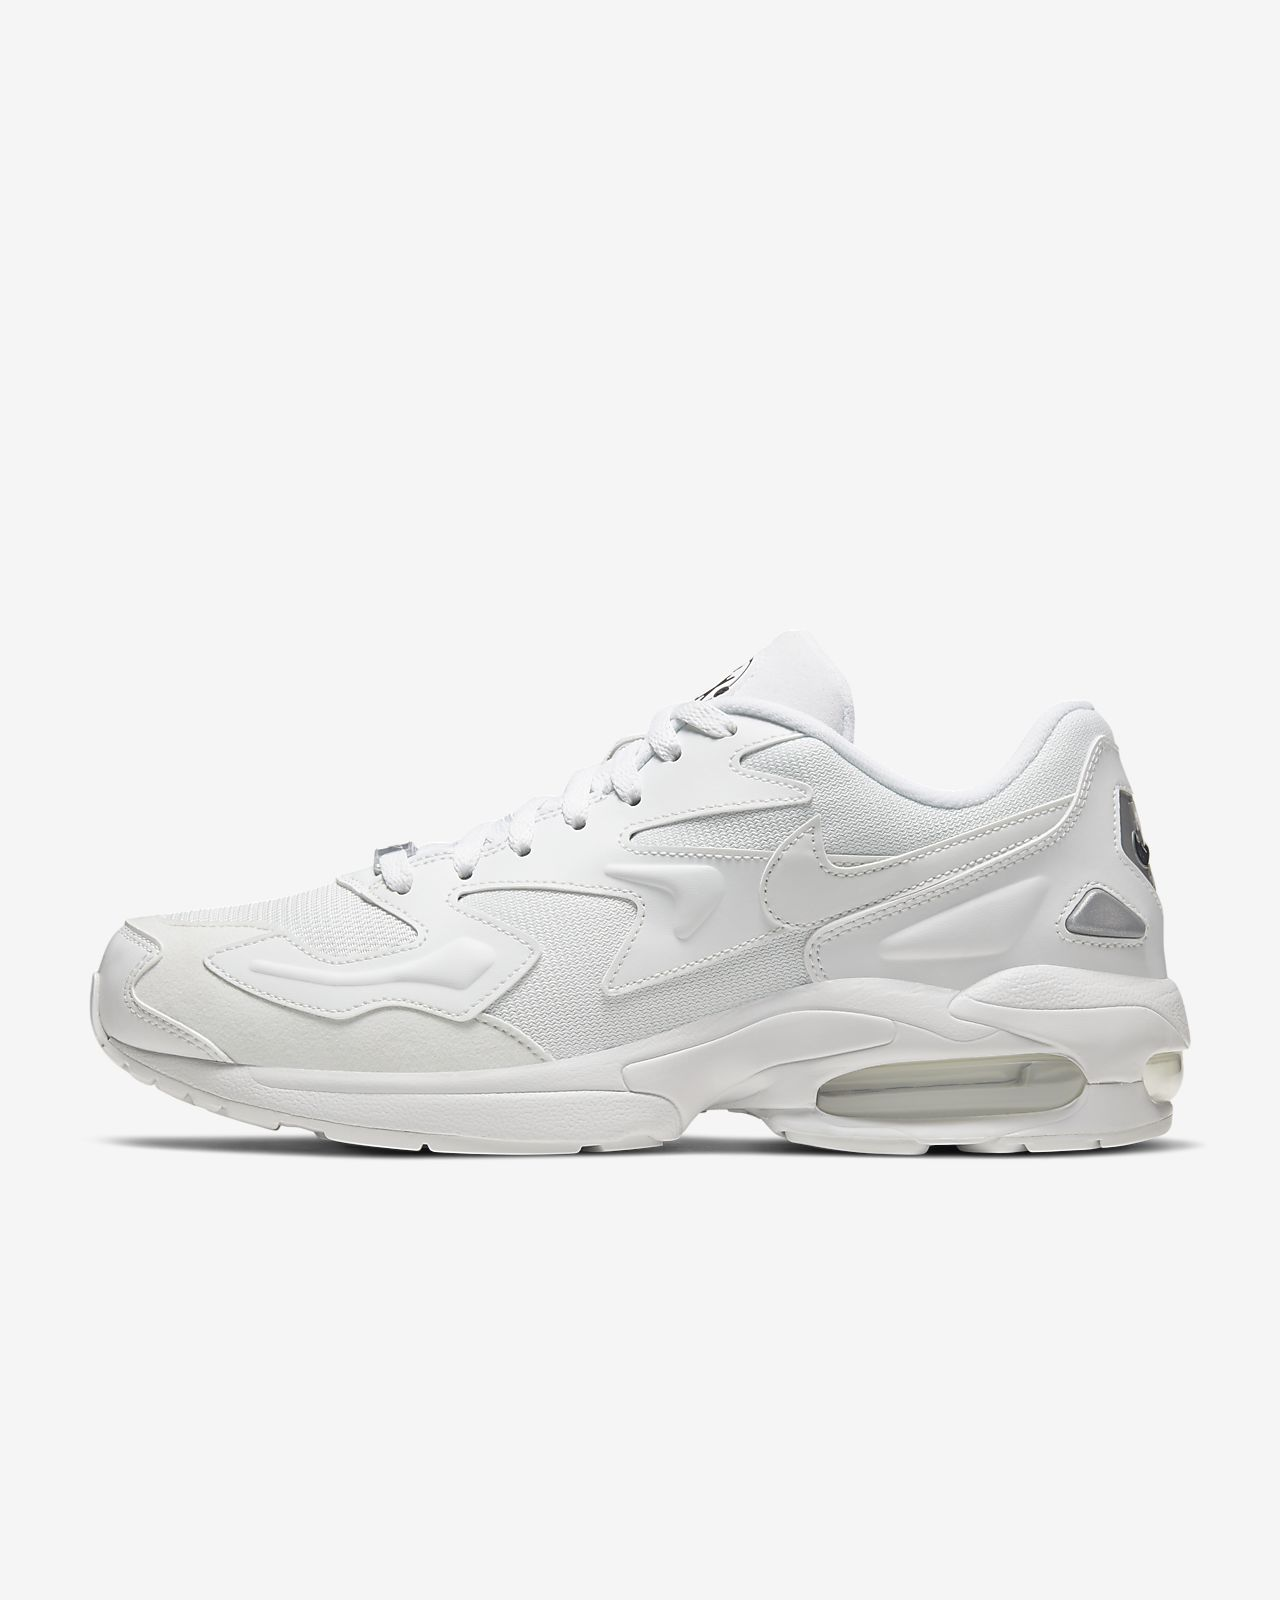 Air Max 2 Light in 2019 | Sneakers | Sneakers nike, Nike air